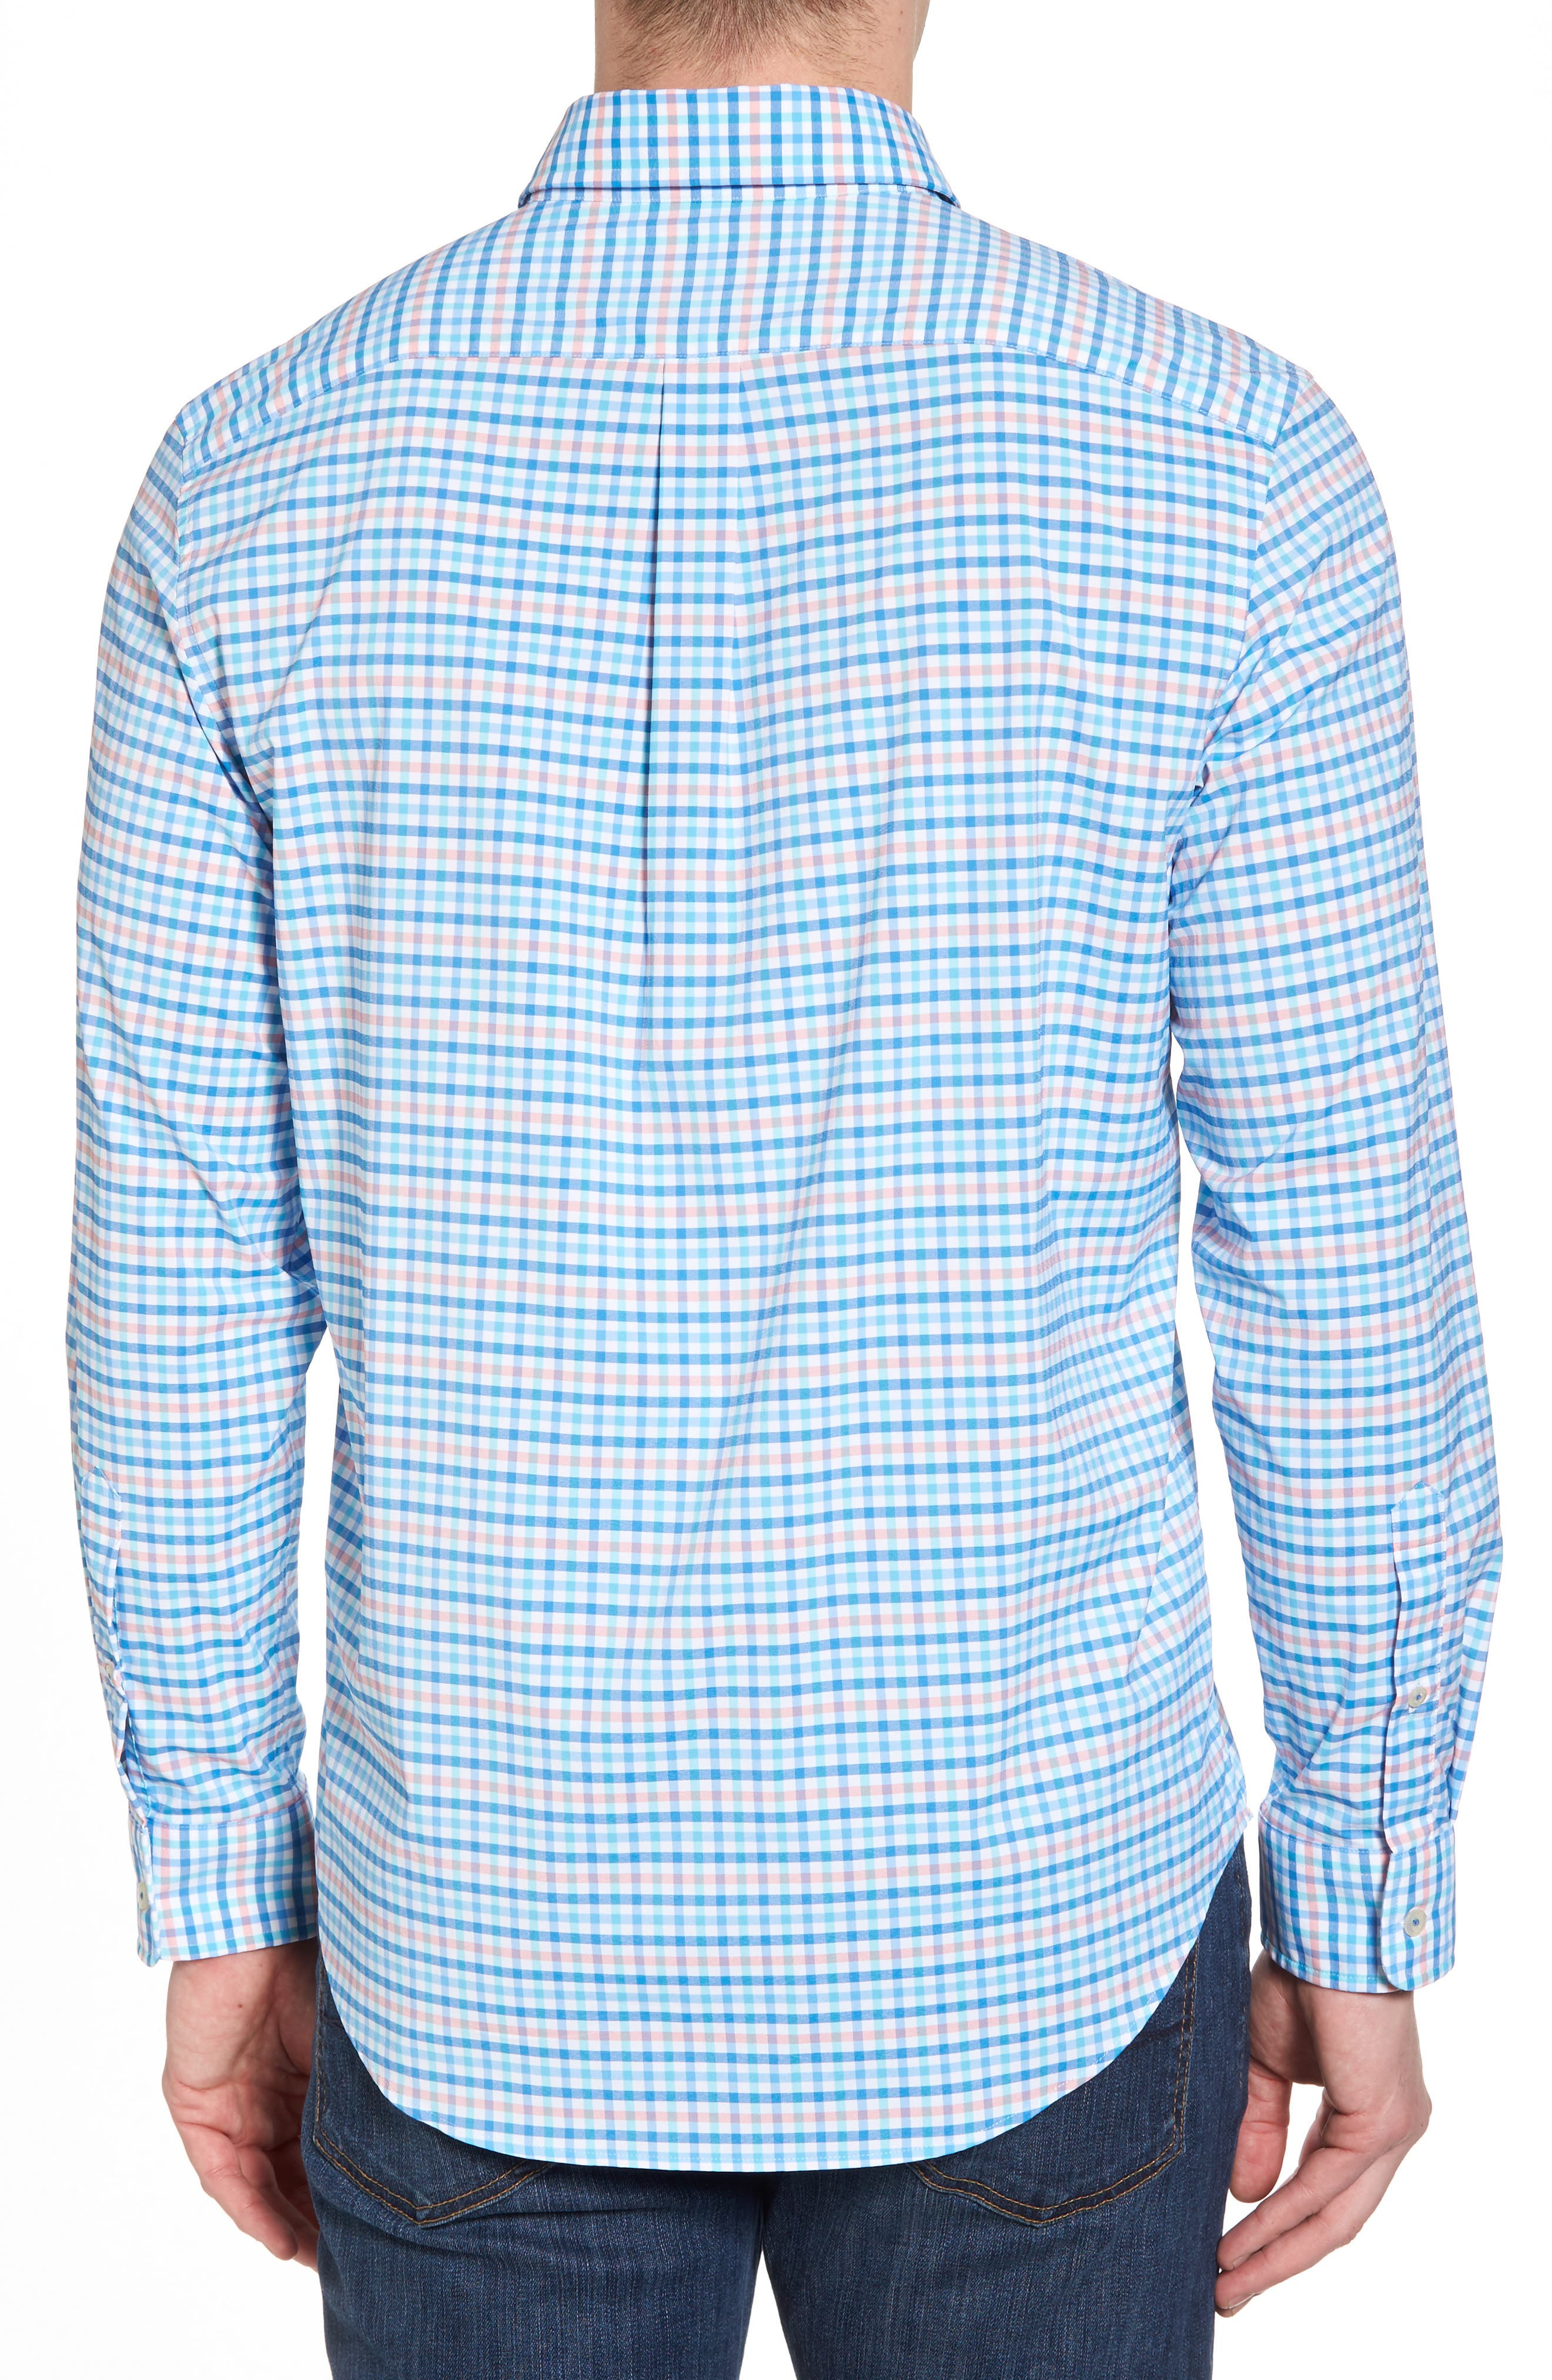 Coco Bay Classic Fit Check Performance Sport Shirt,                             Alternate thumbnail 2, color,                             484